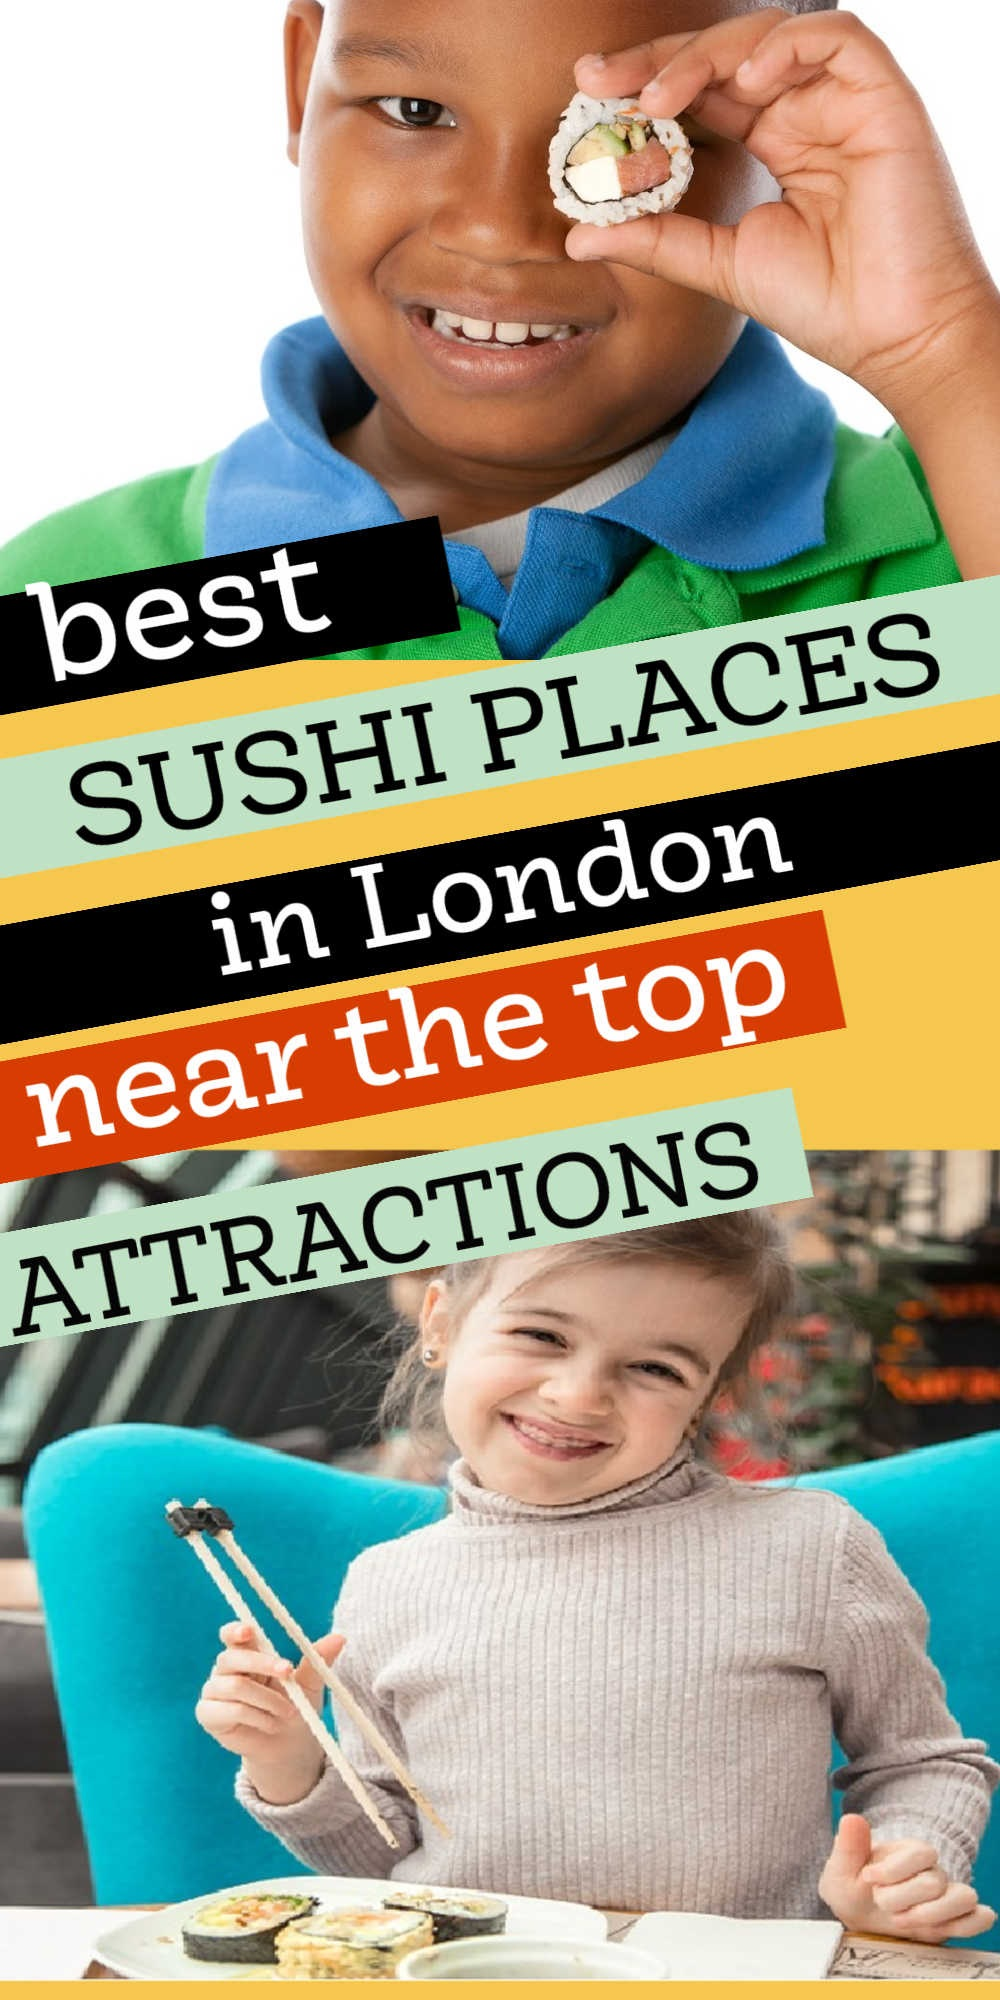 Good Sushi Places in London Near Top Attractions